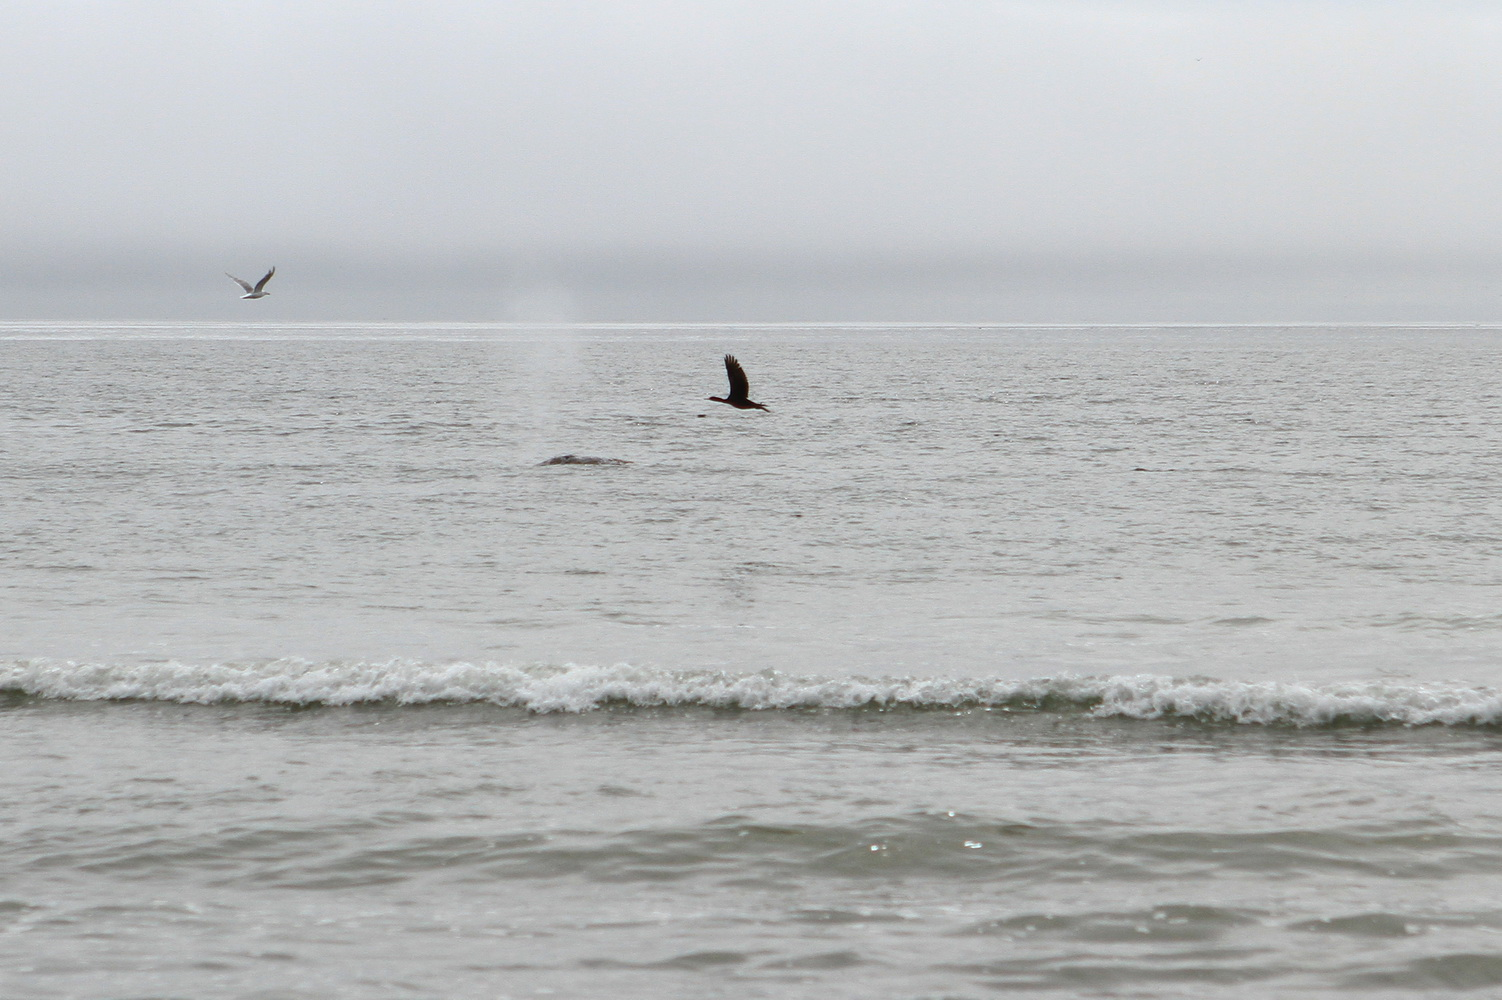 Grey whale shows its back from the water. Photo by Maria Bondar